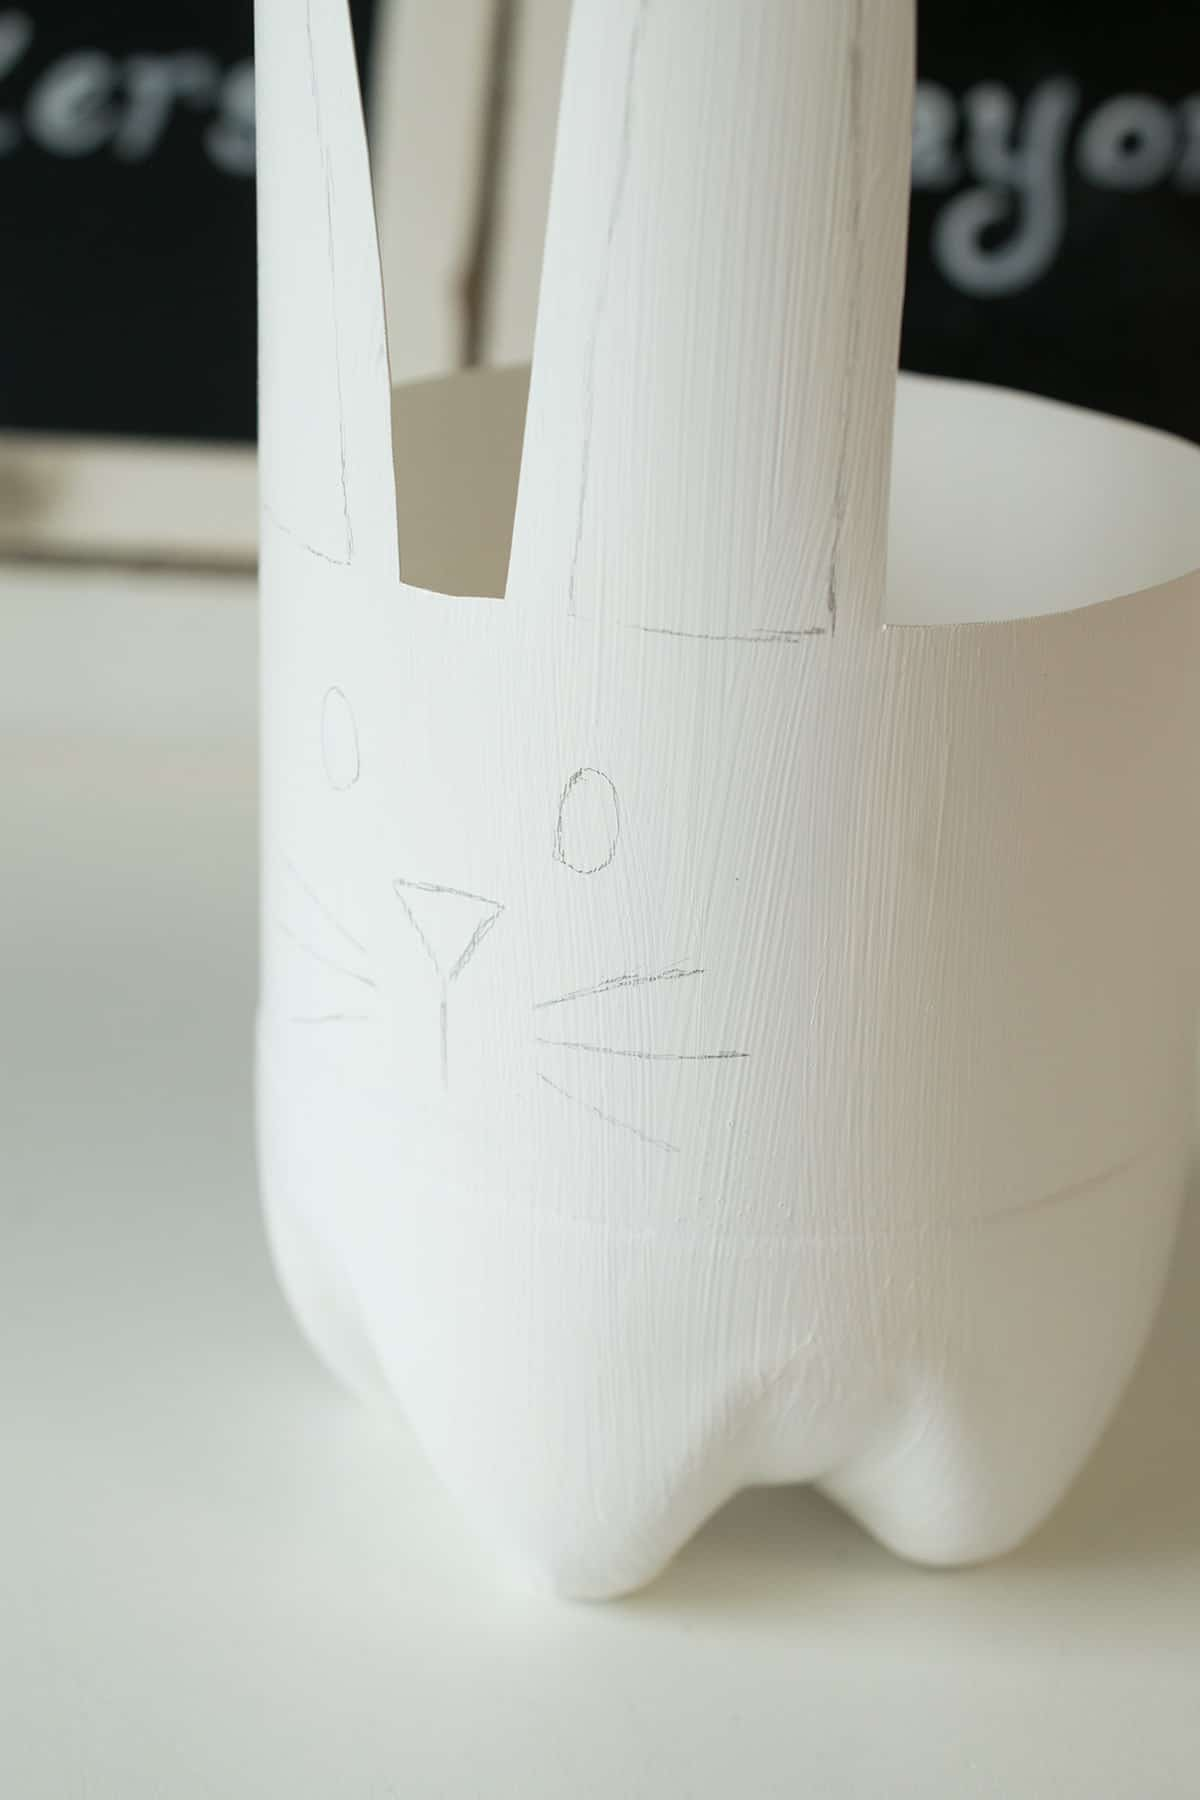 Bottle cut into bunny shape, painted white with face penciled in